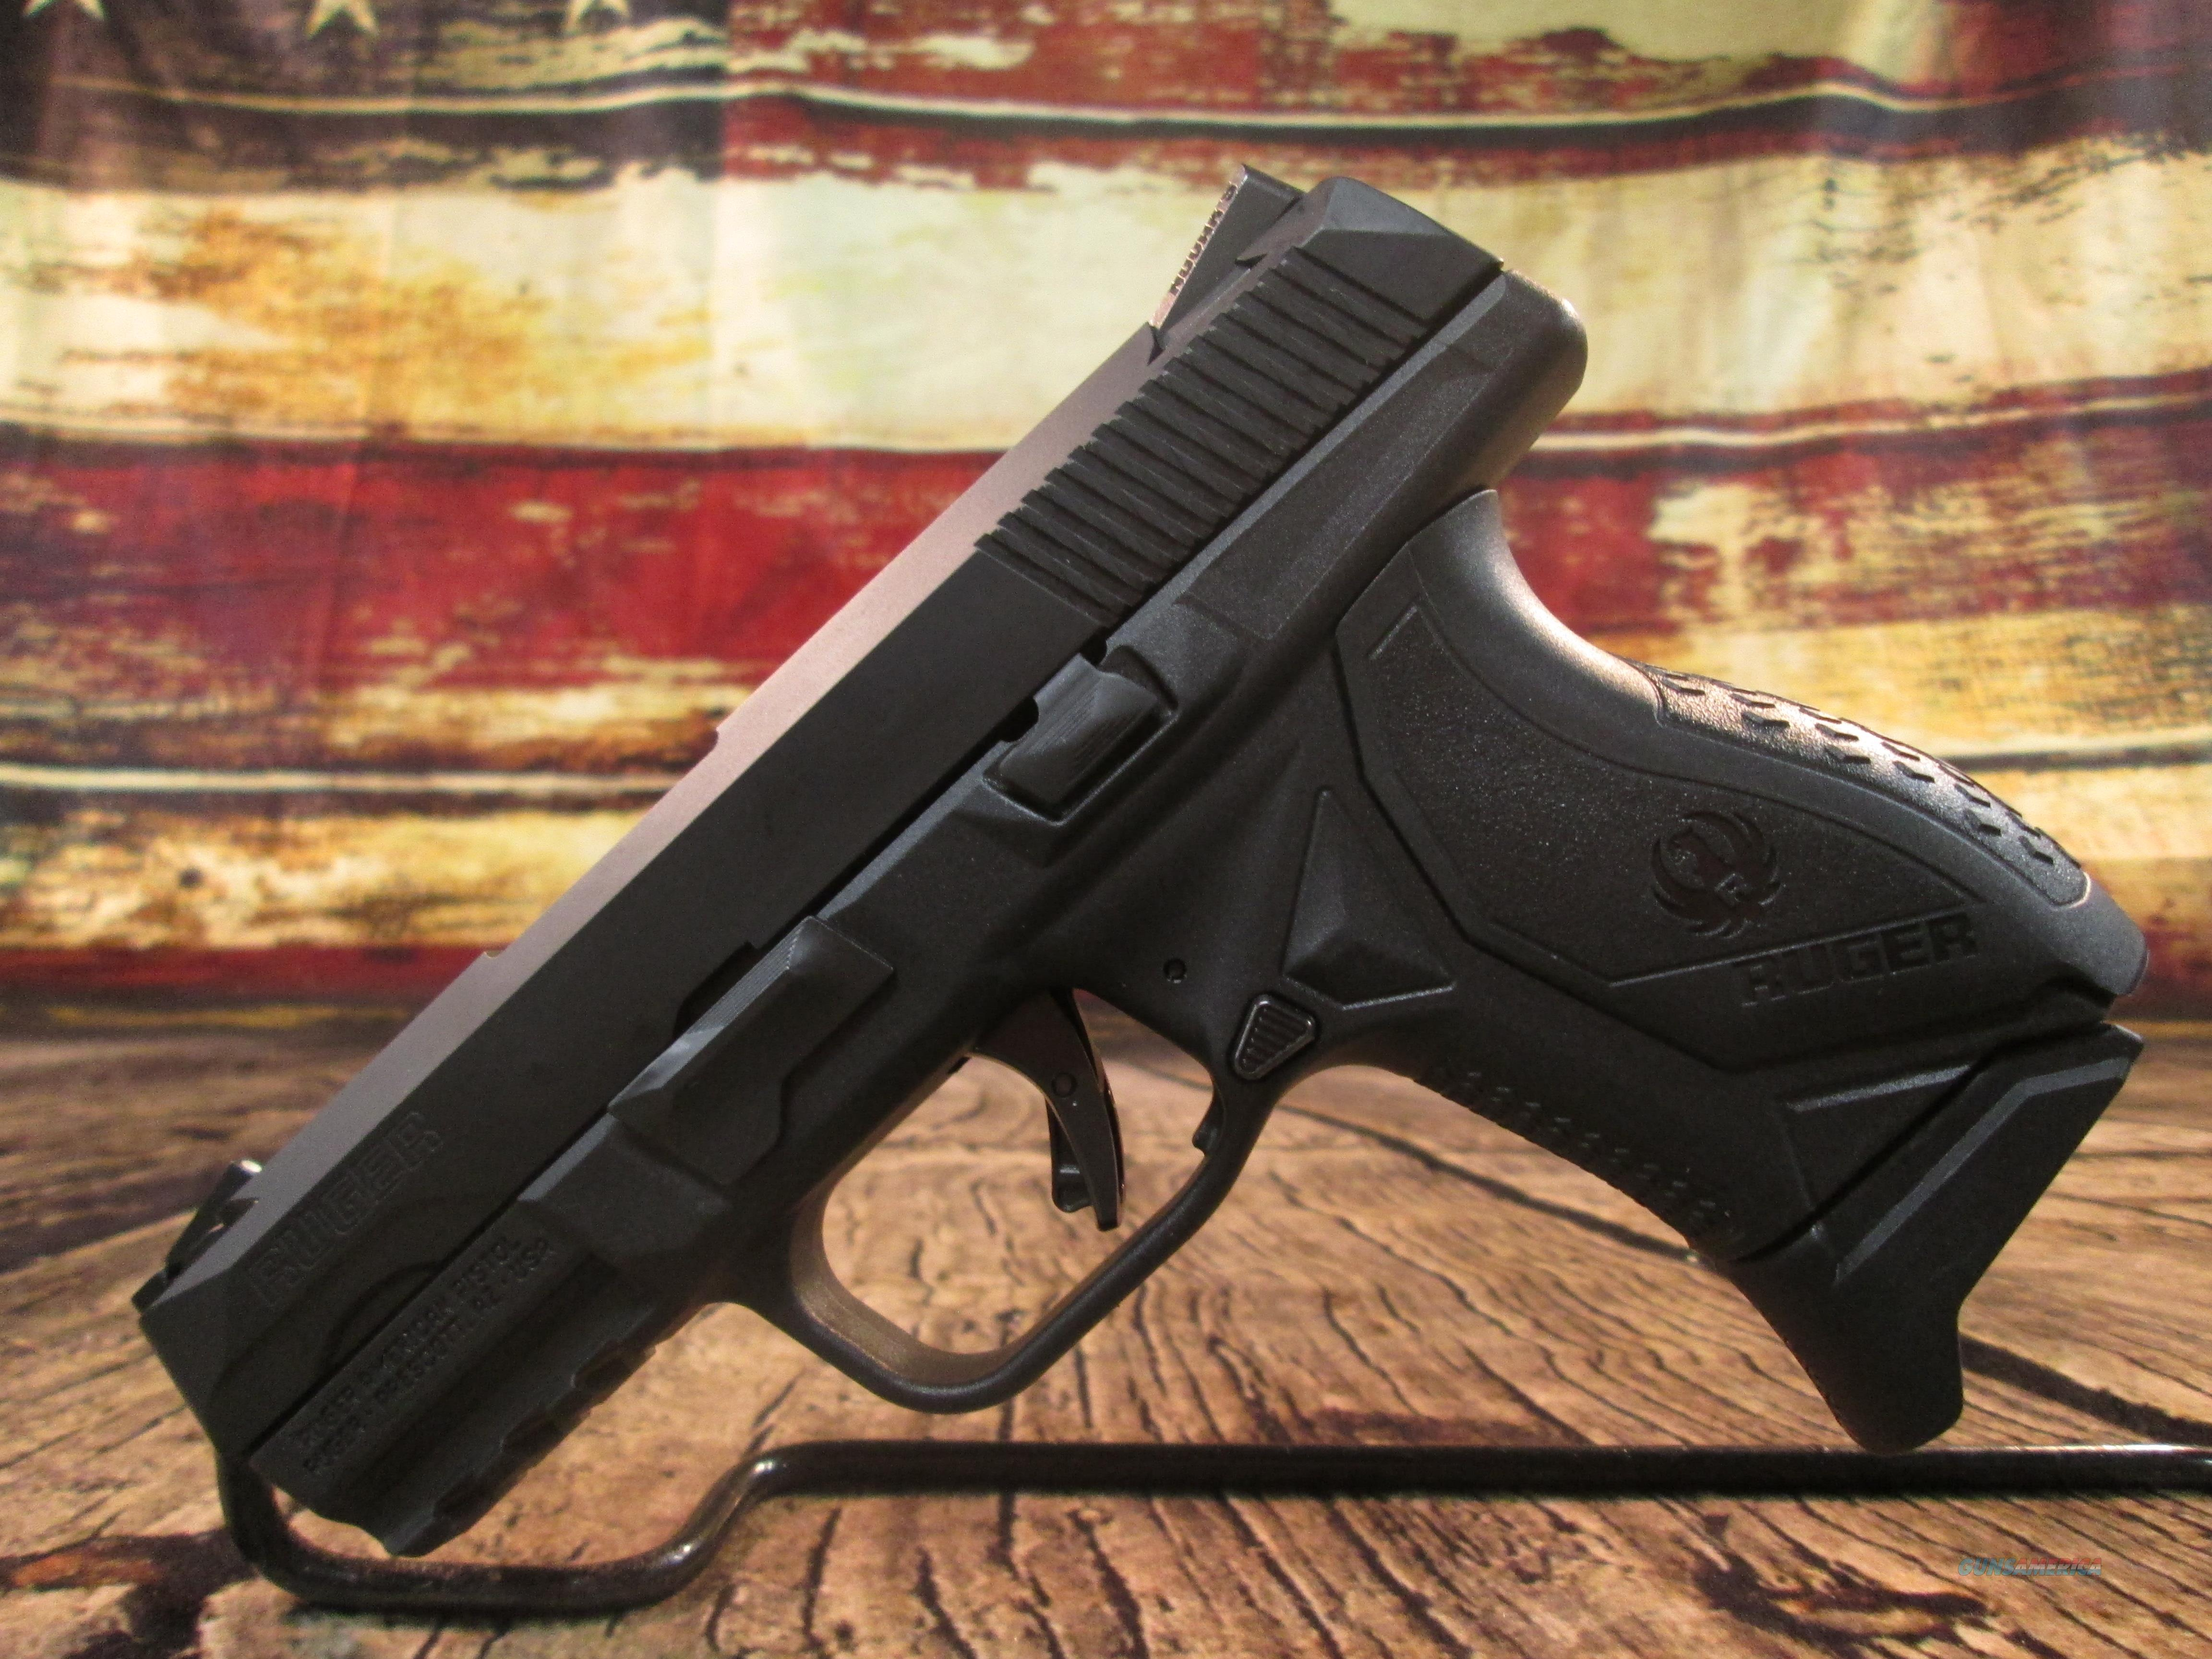 RUGER AMERICAN COMPACT 9MM USED (64064)  Guns > Pistols > Ruger Semi-Auto Pistols > American Pistol